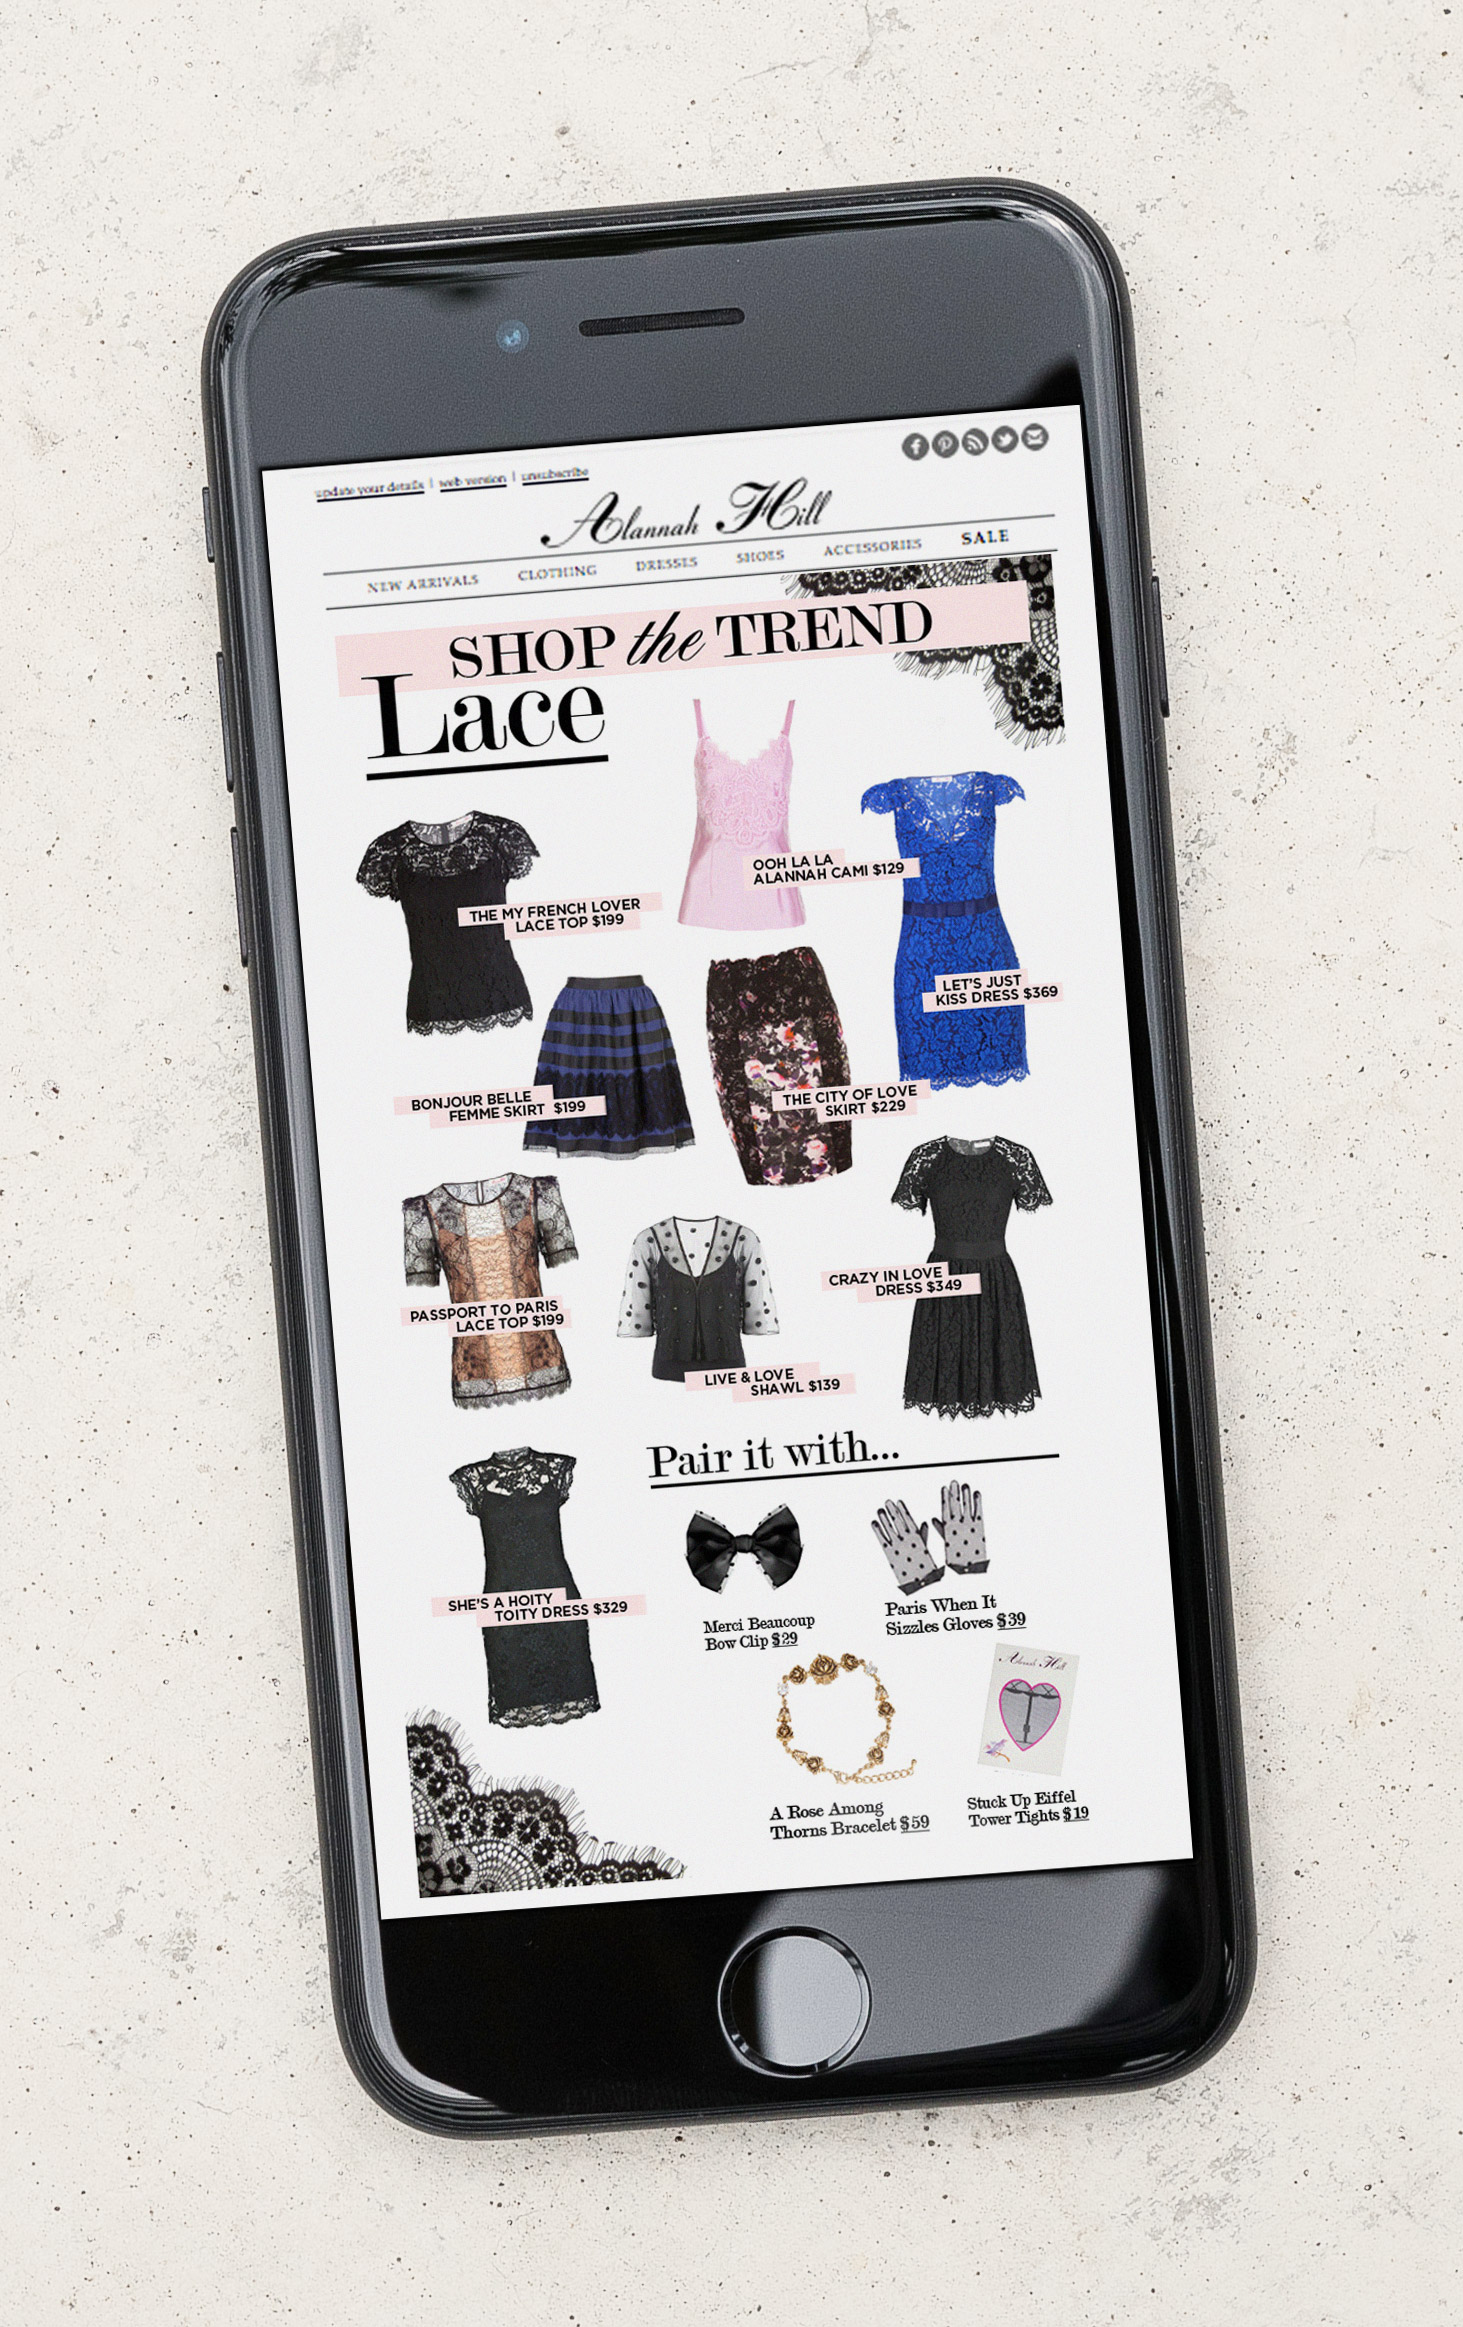 E-mail design for Alannah Hill, a famous luxury fashion brand from Melbourne, Australia.